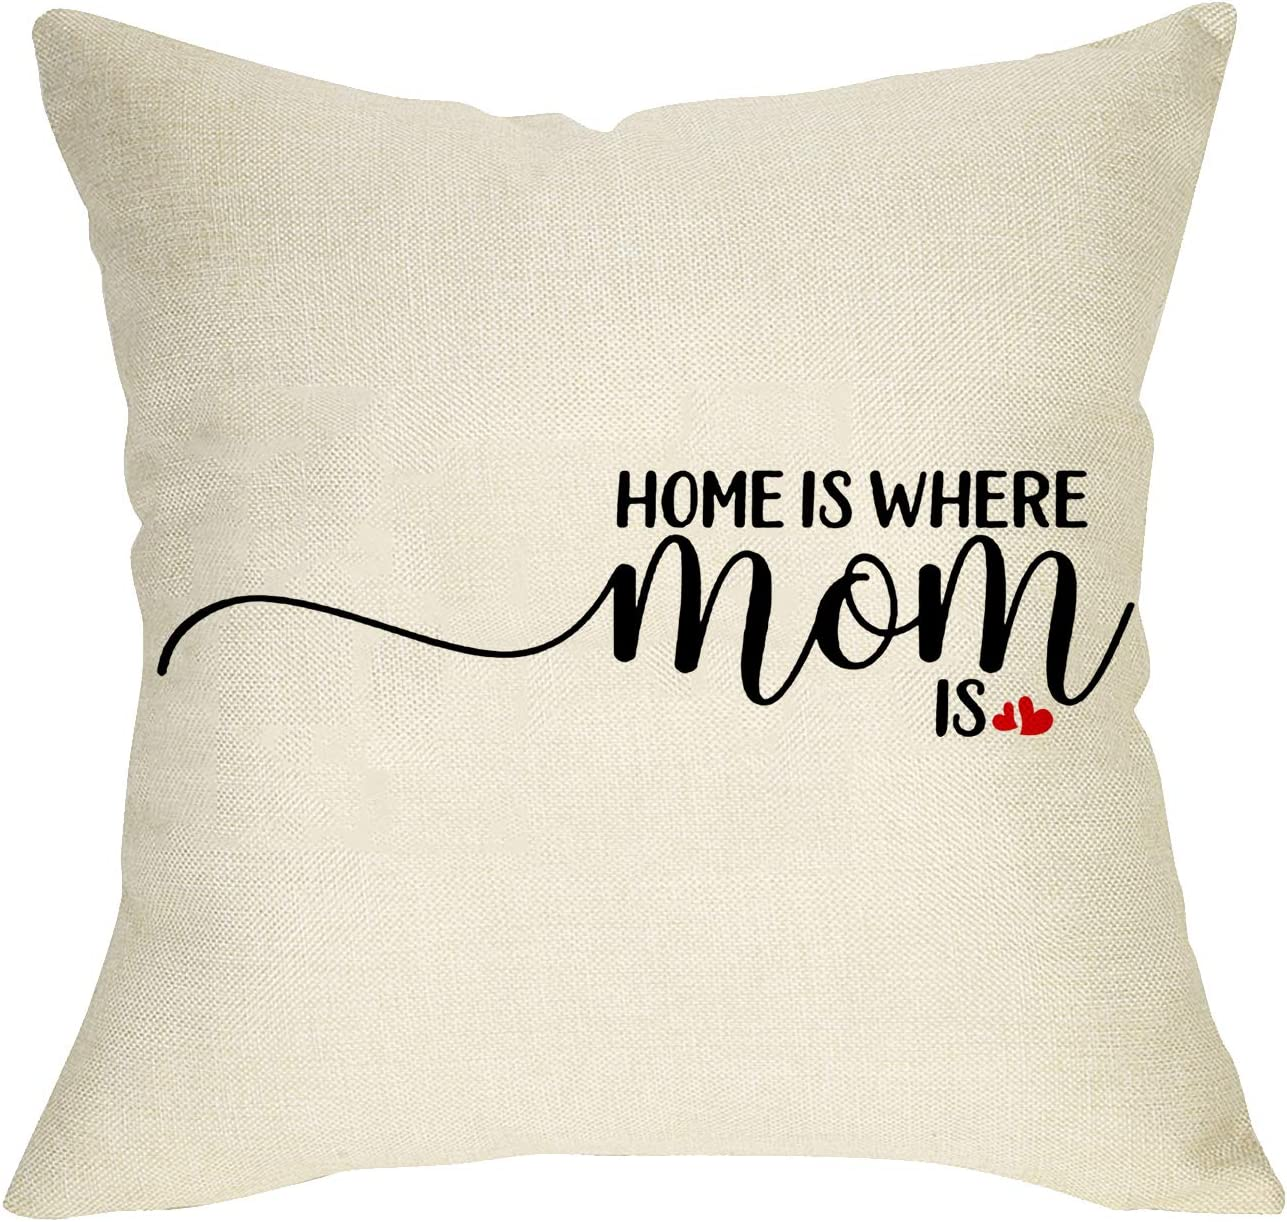 Softxpp Home is Where Mom is Throw Pillow Cover, Rustic Farmhouse Decorative Cushion Case Quote for Mother's Day Birthday Gift, Holiday Home Decoration Square Pillowcase Decor 18 x 18 Cotton Linen